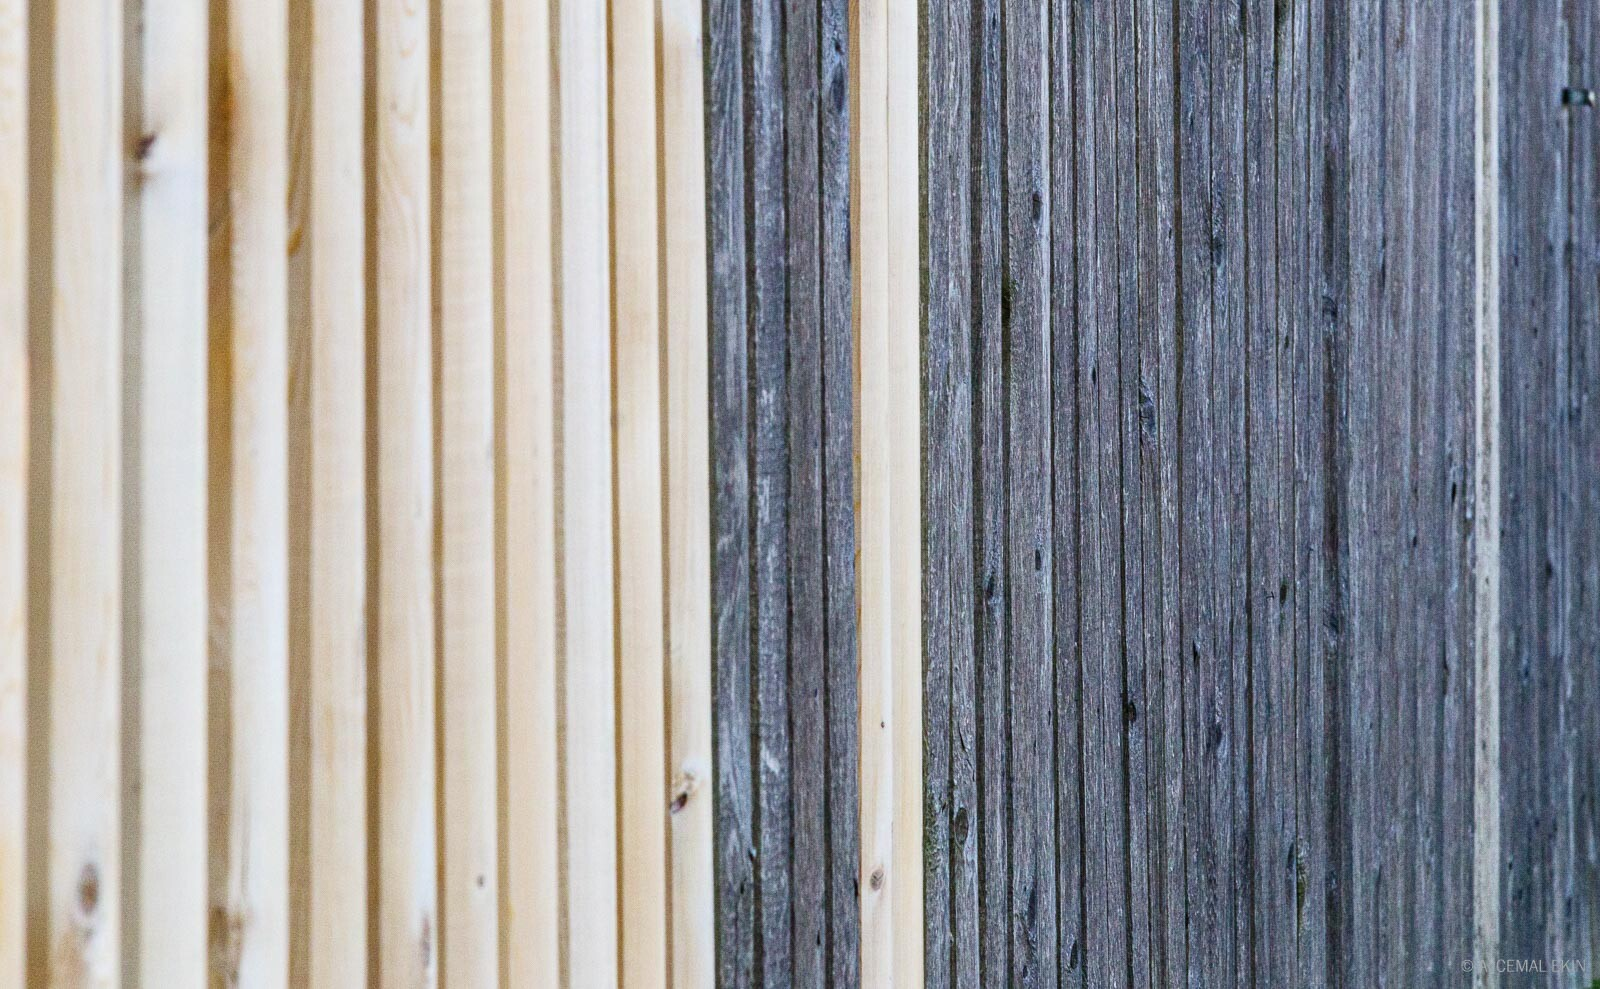 Same wood, different colors